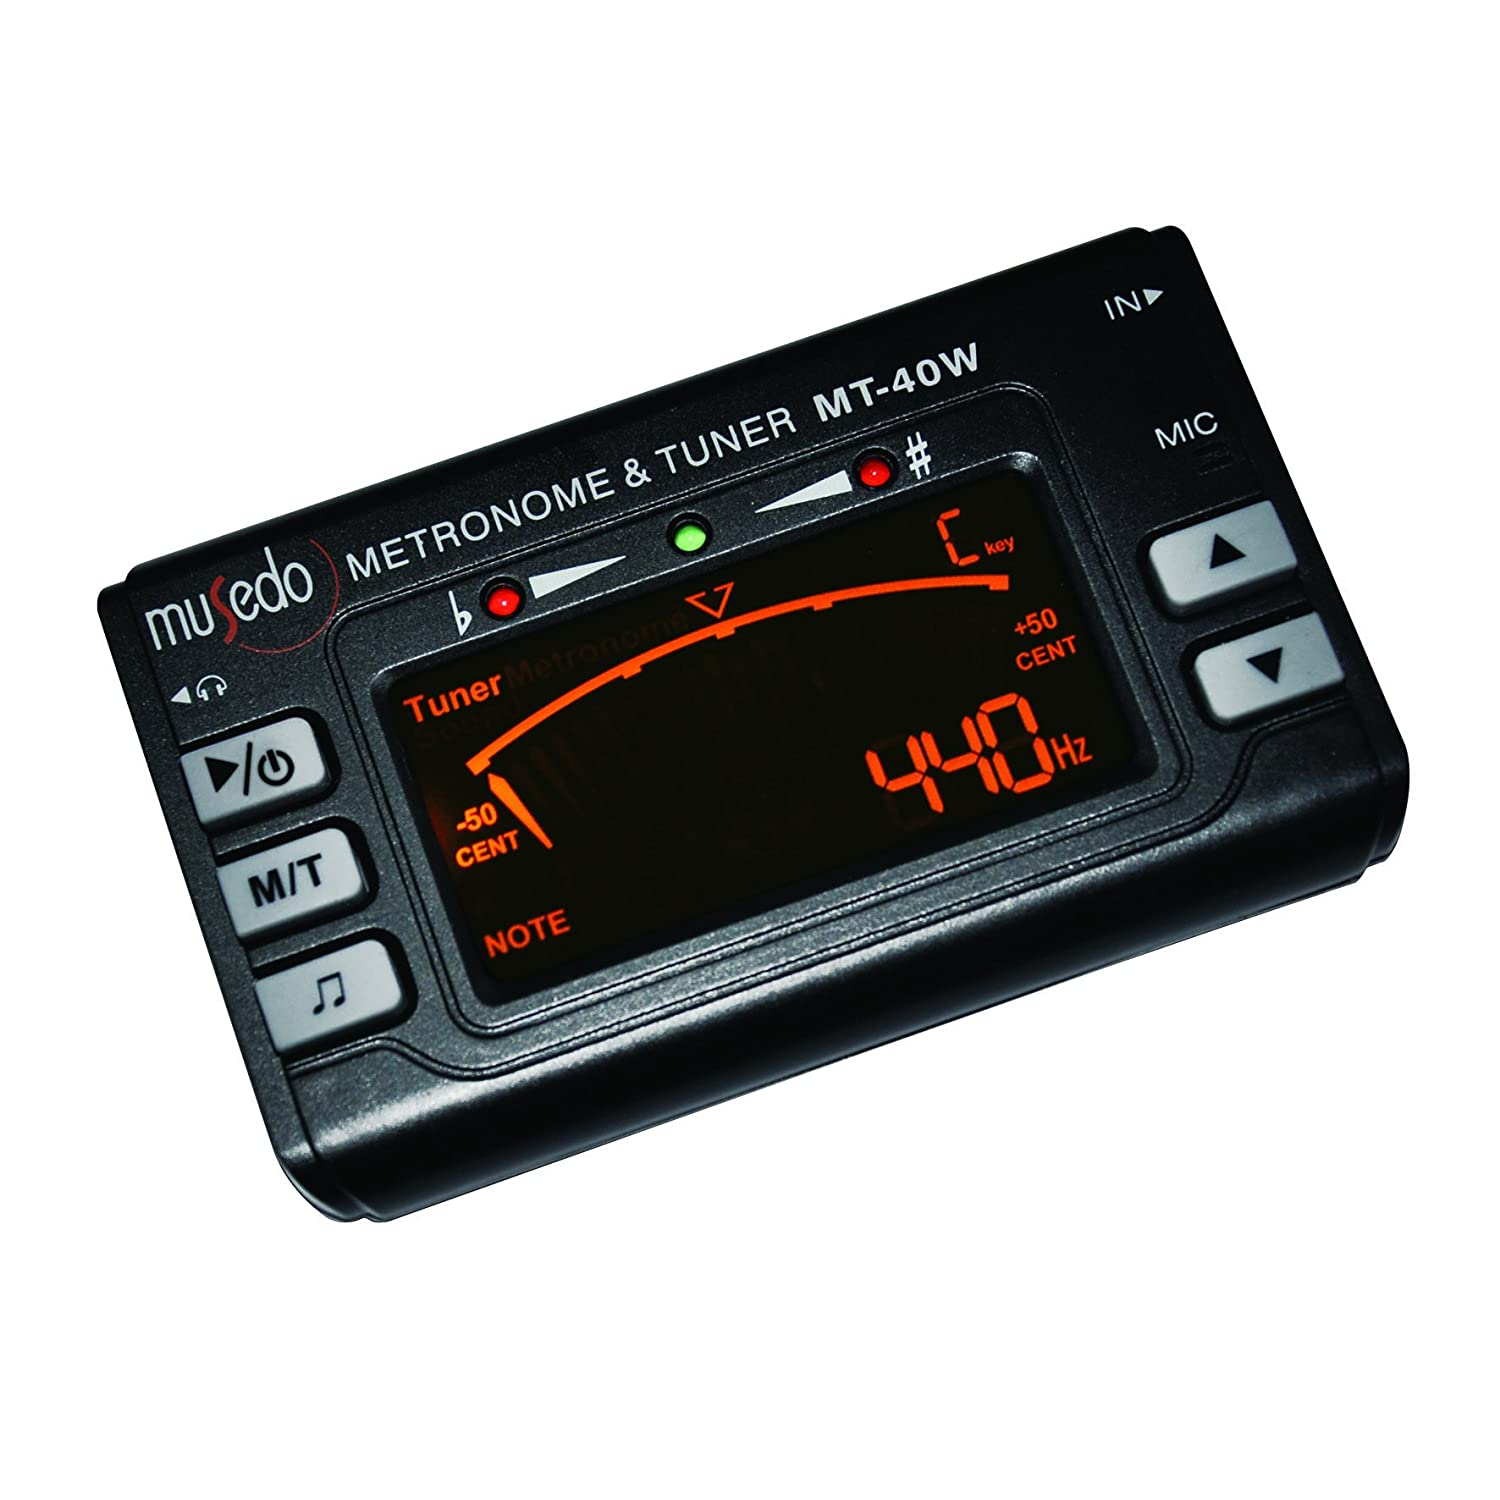 musedo mt 40w metronome tuner musical instruments